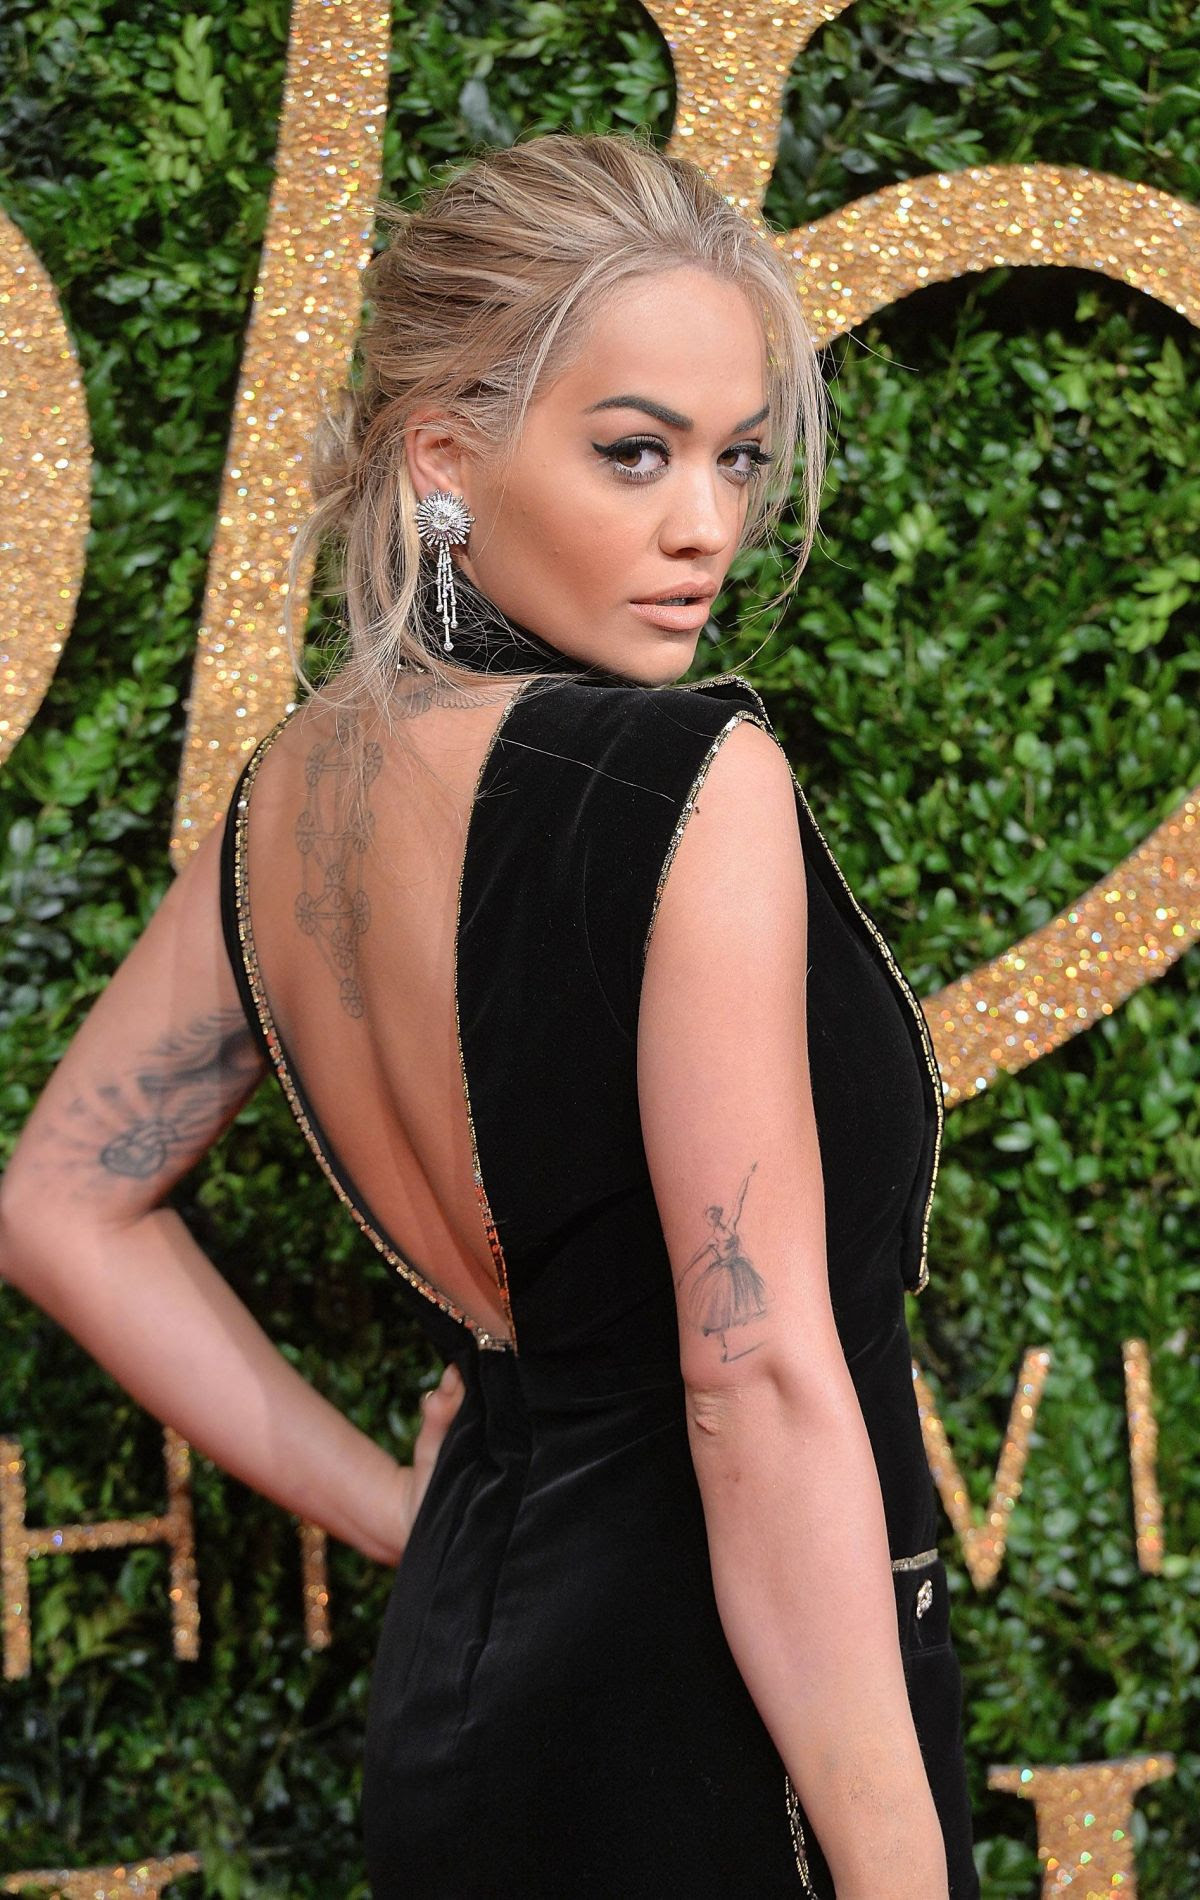 http://www.hawtcelebs.com/wp-content/uploads/2015/11/rita-ora-at-2015-british-fashion-awards-in-london-11-23-2015_4.jpg